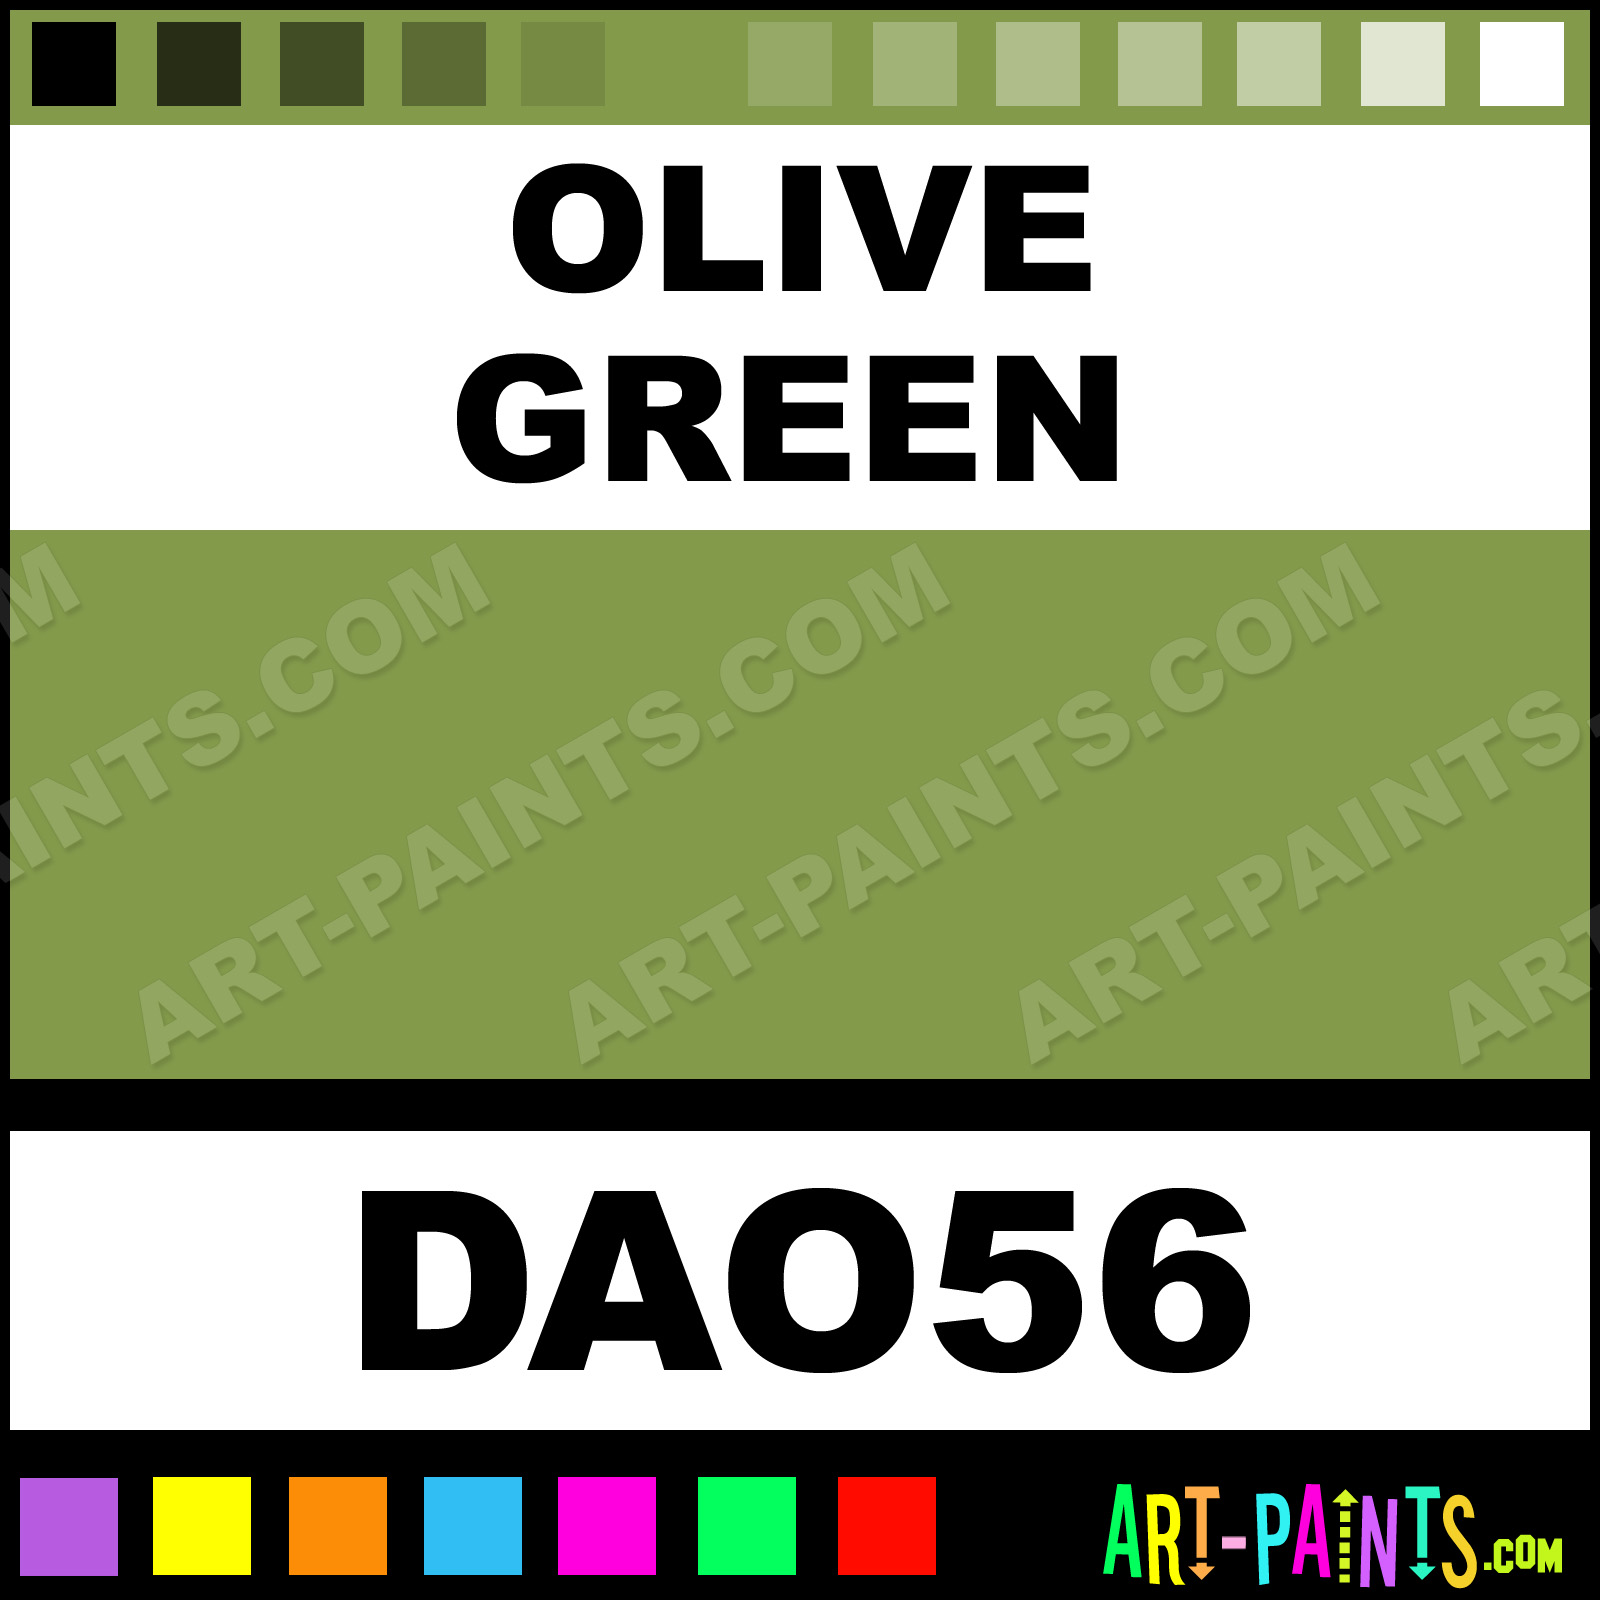 The 25 Best Olive Green Paints Ideas On Pinterest: Olive Green DecoArt Acrylic Paints